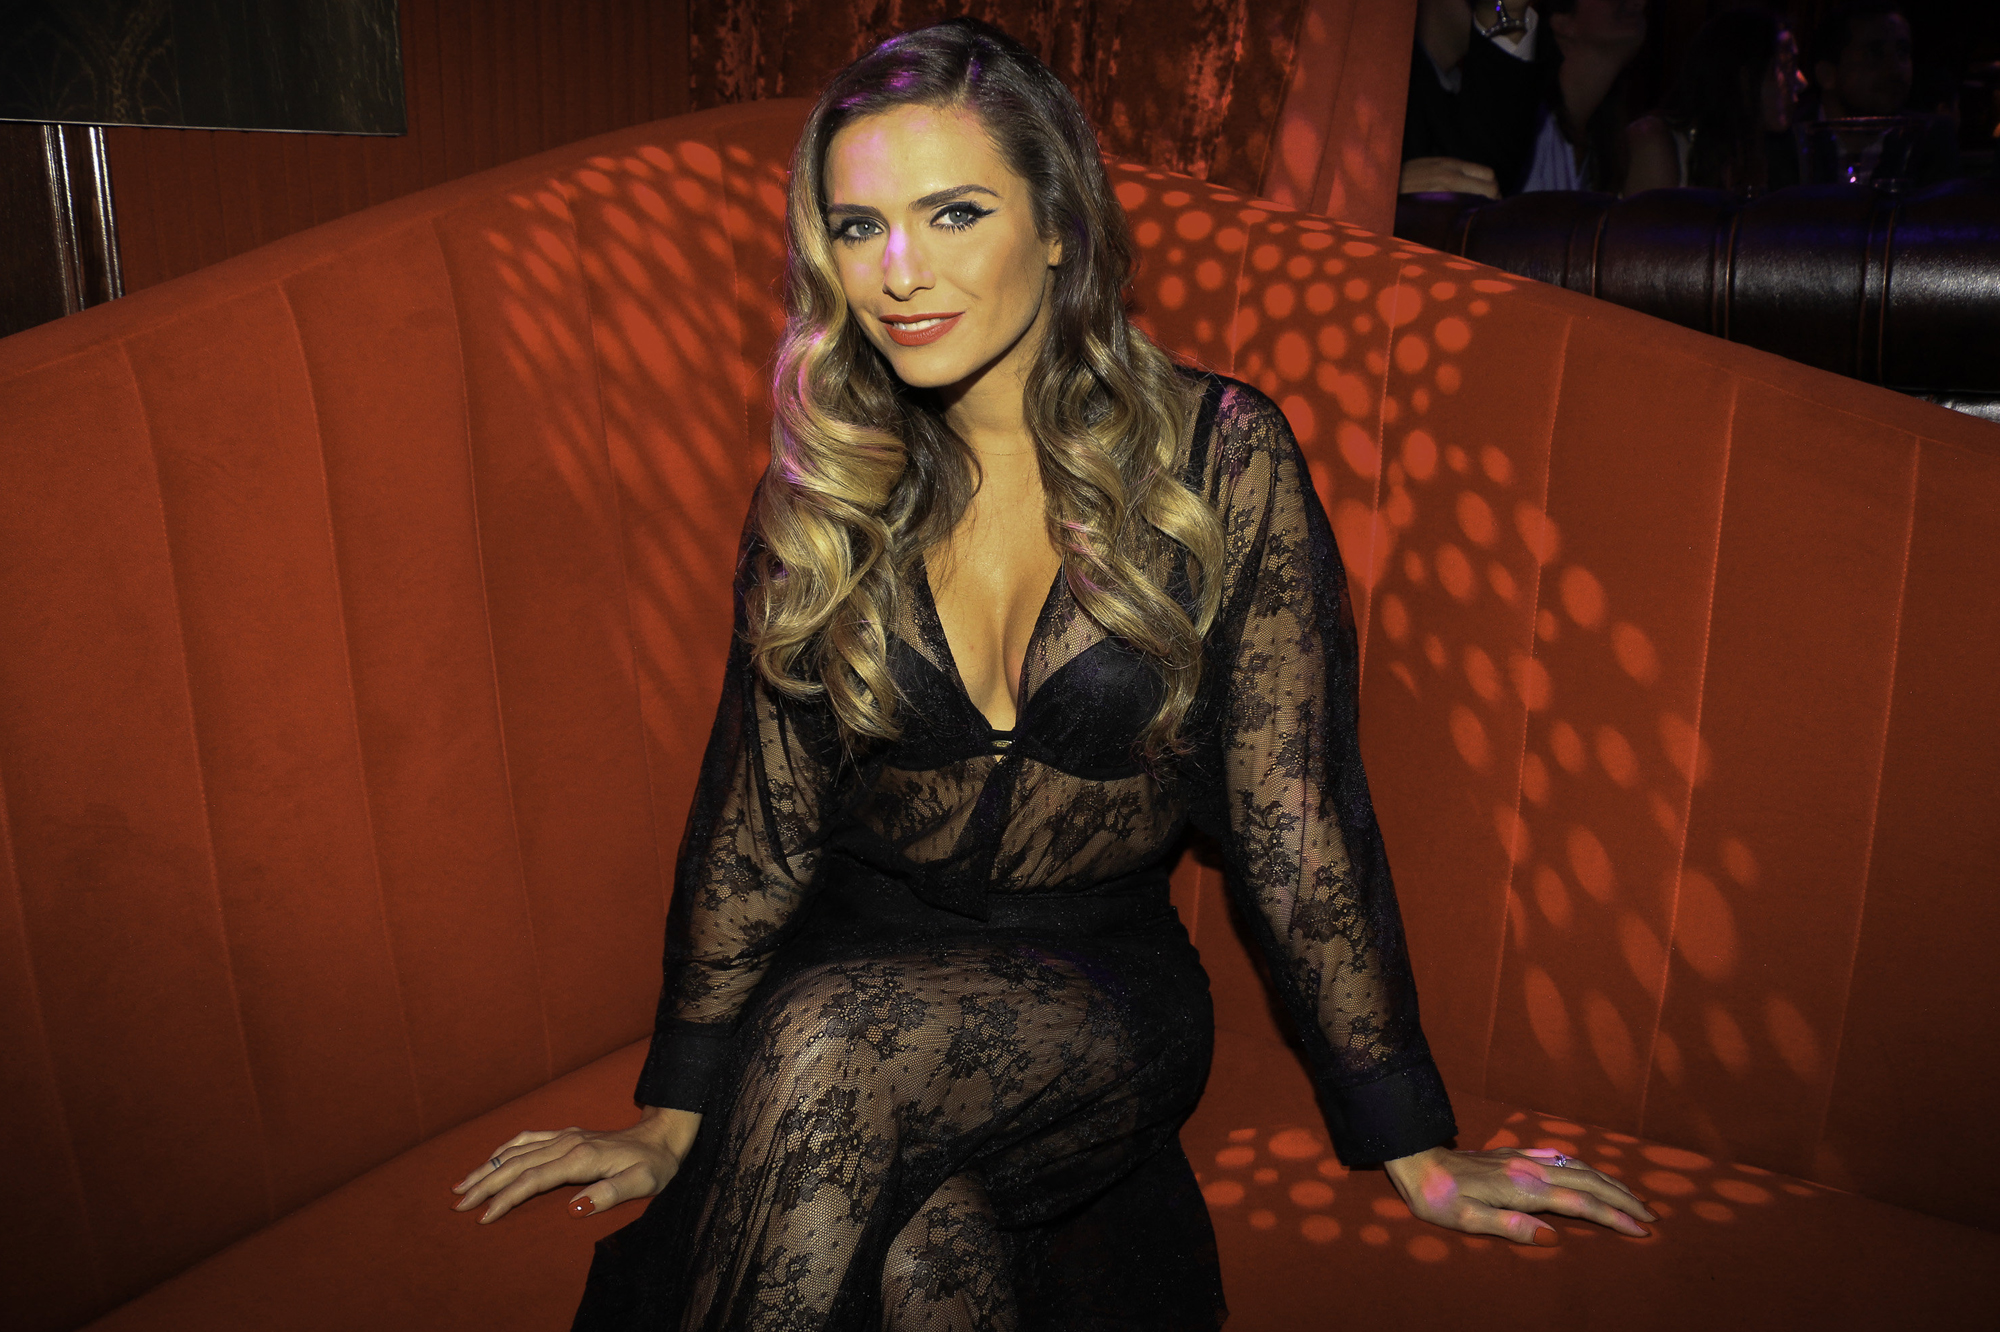 elle a lanc son calendrier sexy 2015 clara morgane sexy et glamour. Black Bedroom Furniture Sets. Home Design Ideas